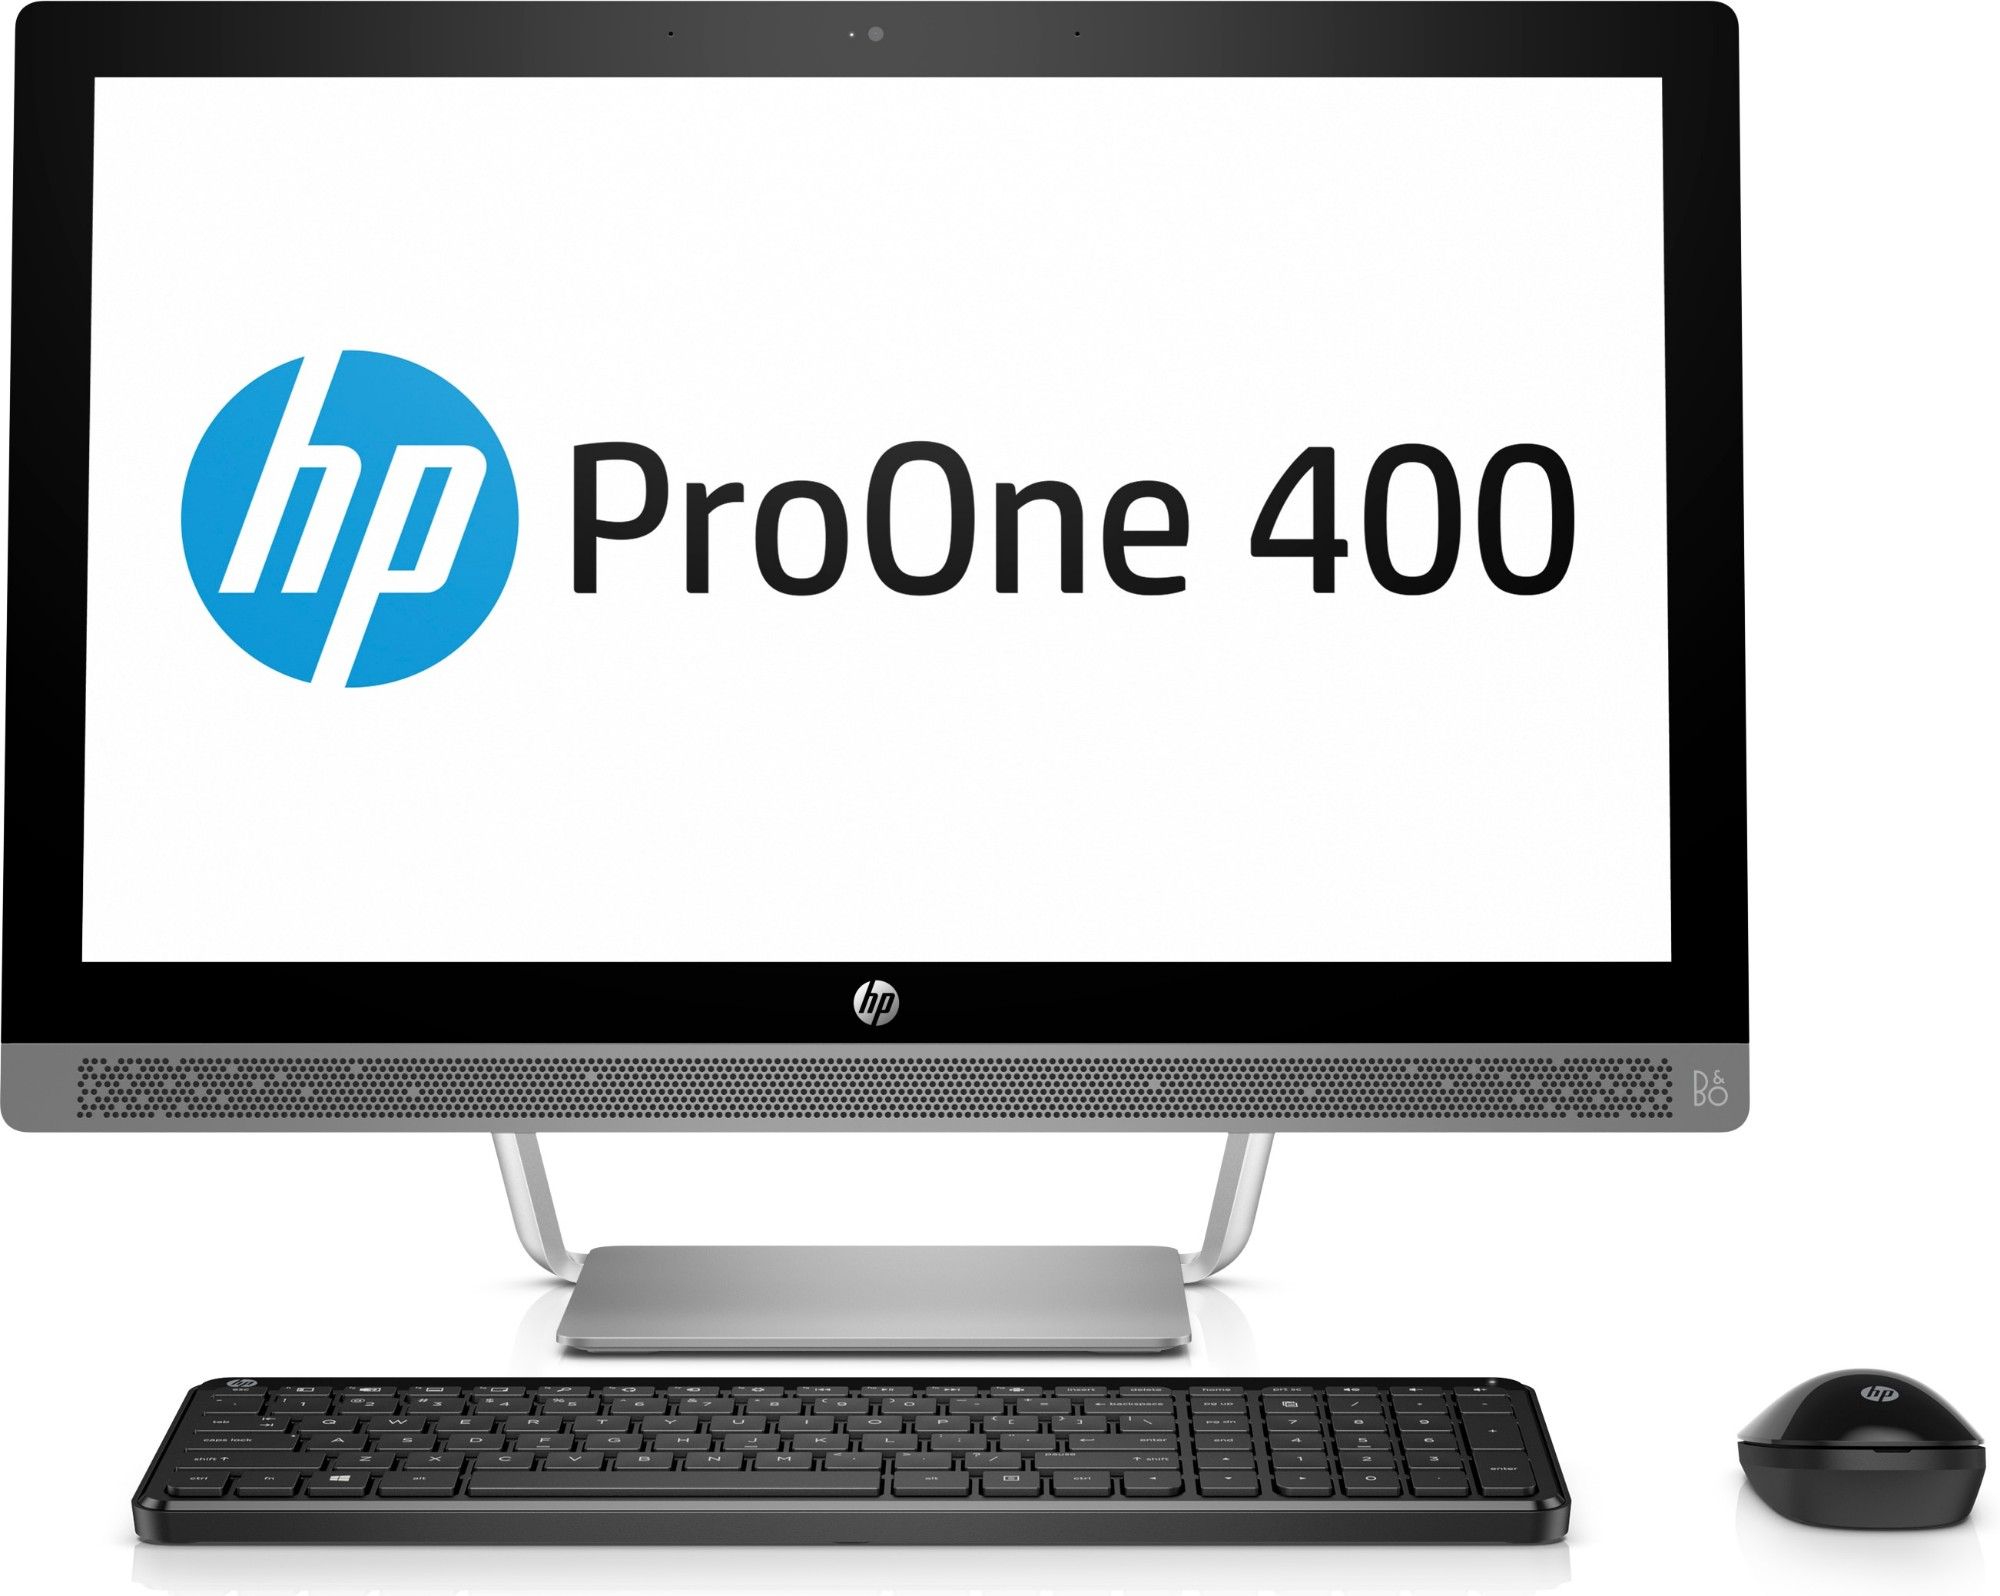 HP ProOne 440 G3 23.8-inch Non-Touch All-in-One PC